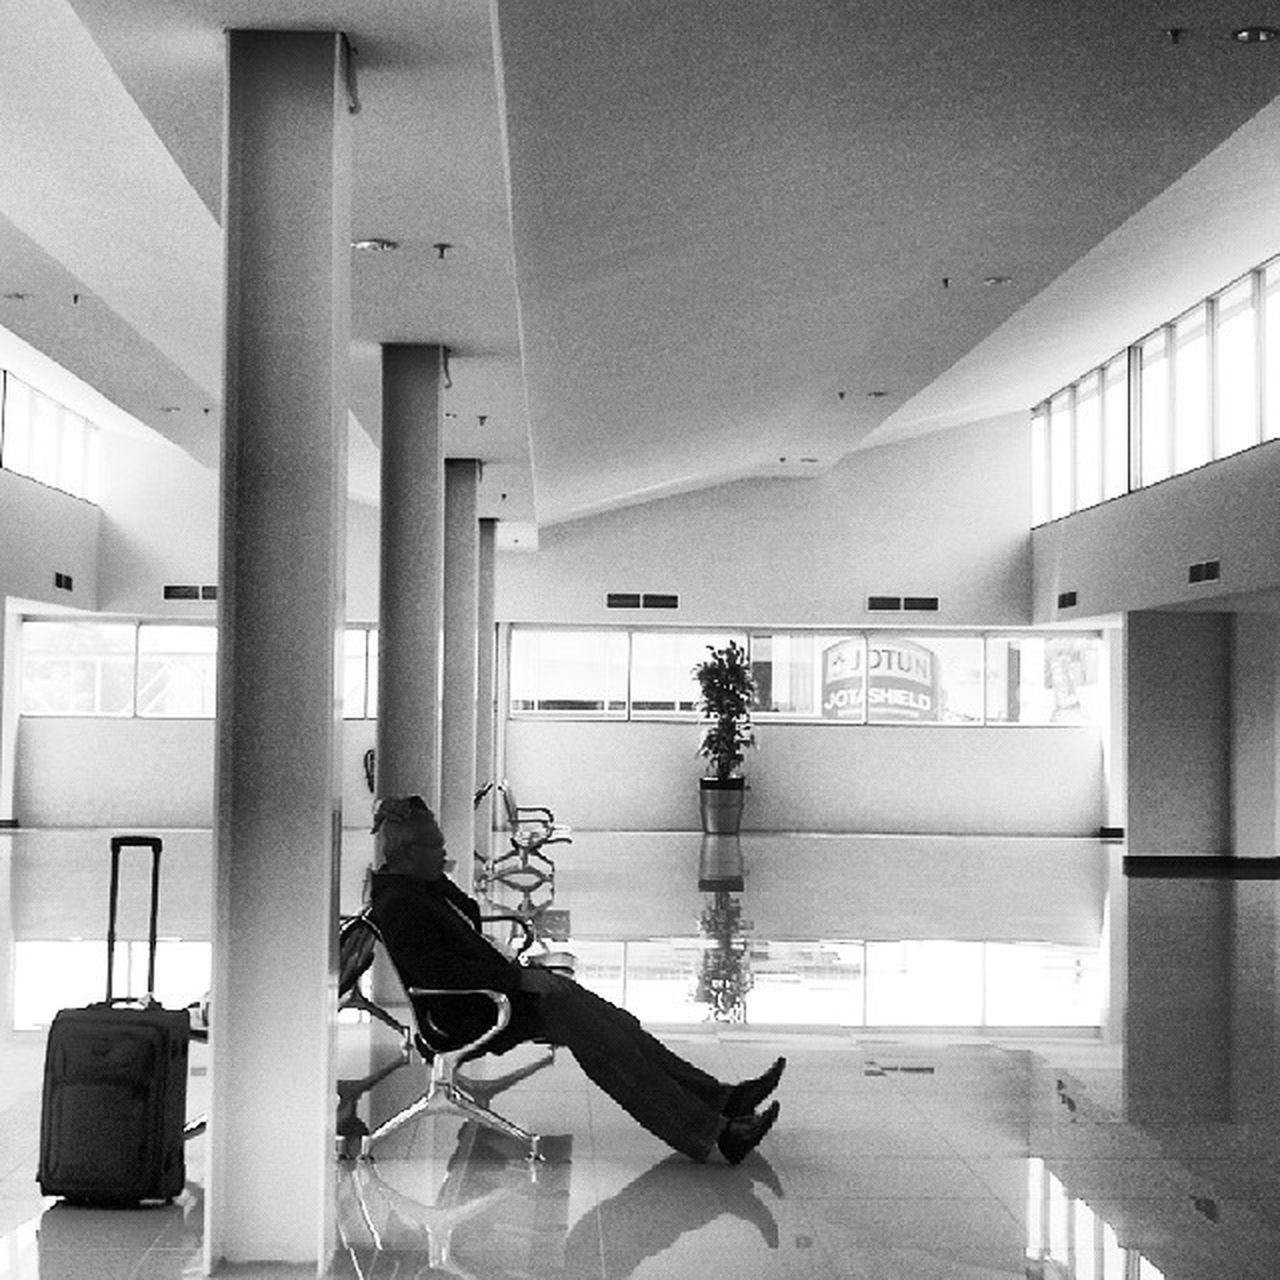 Waiting Terminal Airport Blackandwhite Kualanamu Medan Alone Traveler